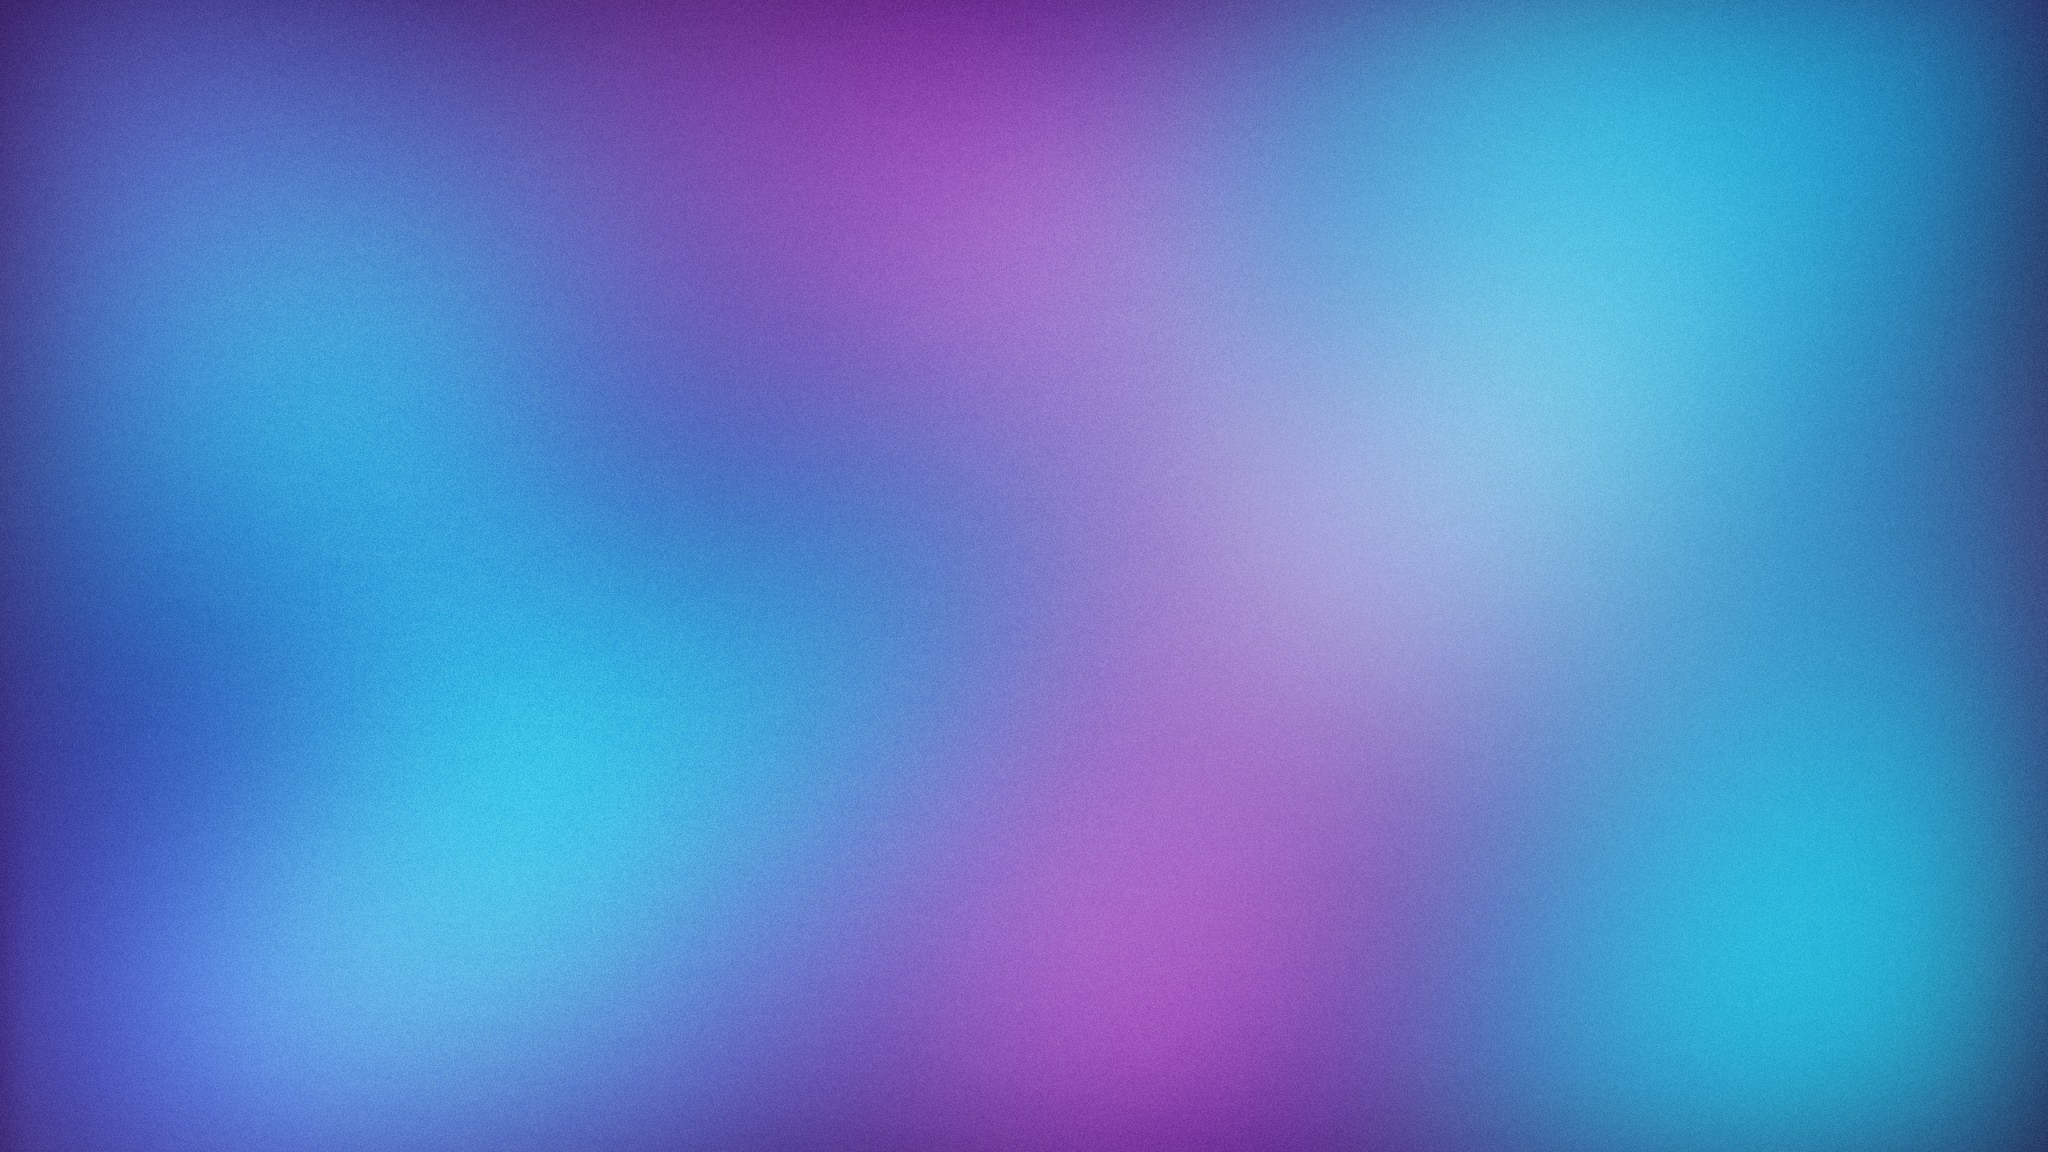 Wallpaper background, spots, bright, solid HD HD Background .